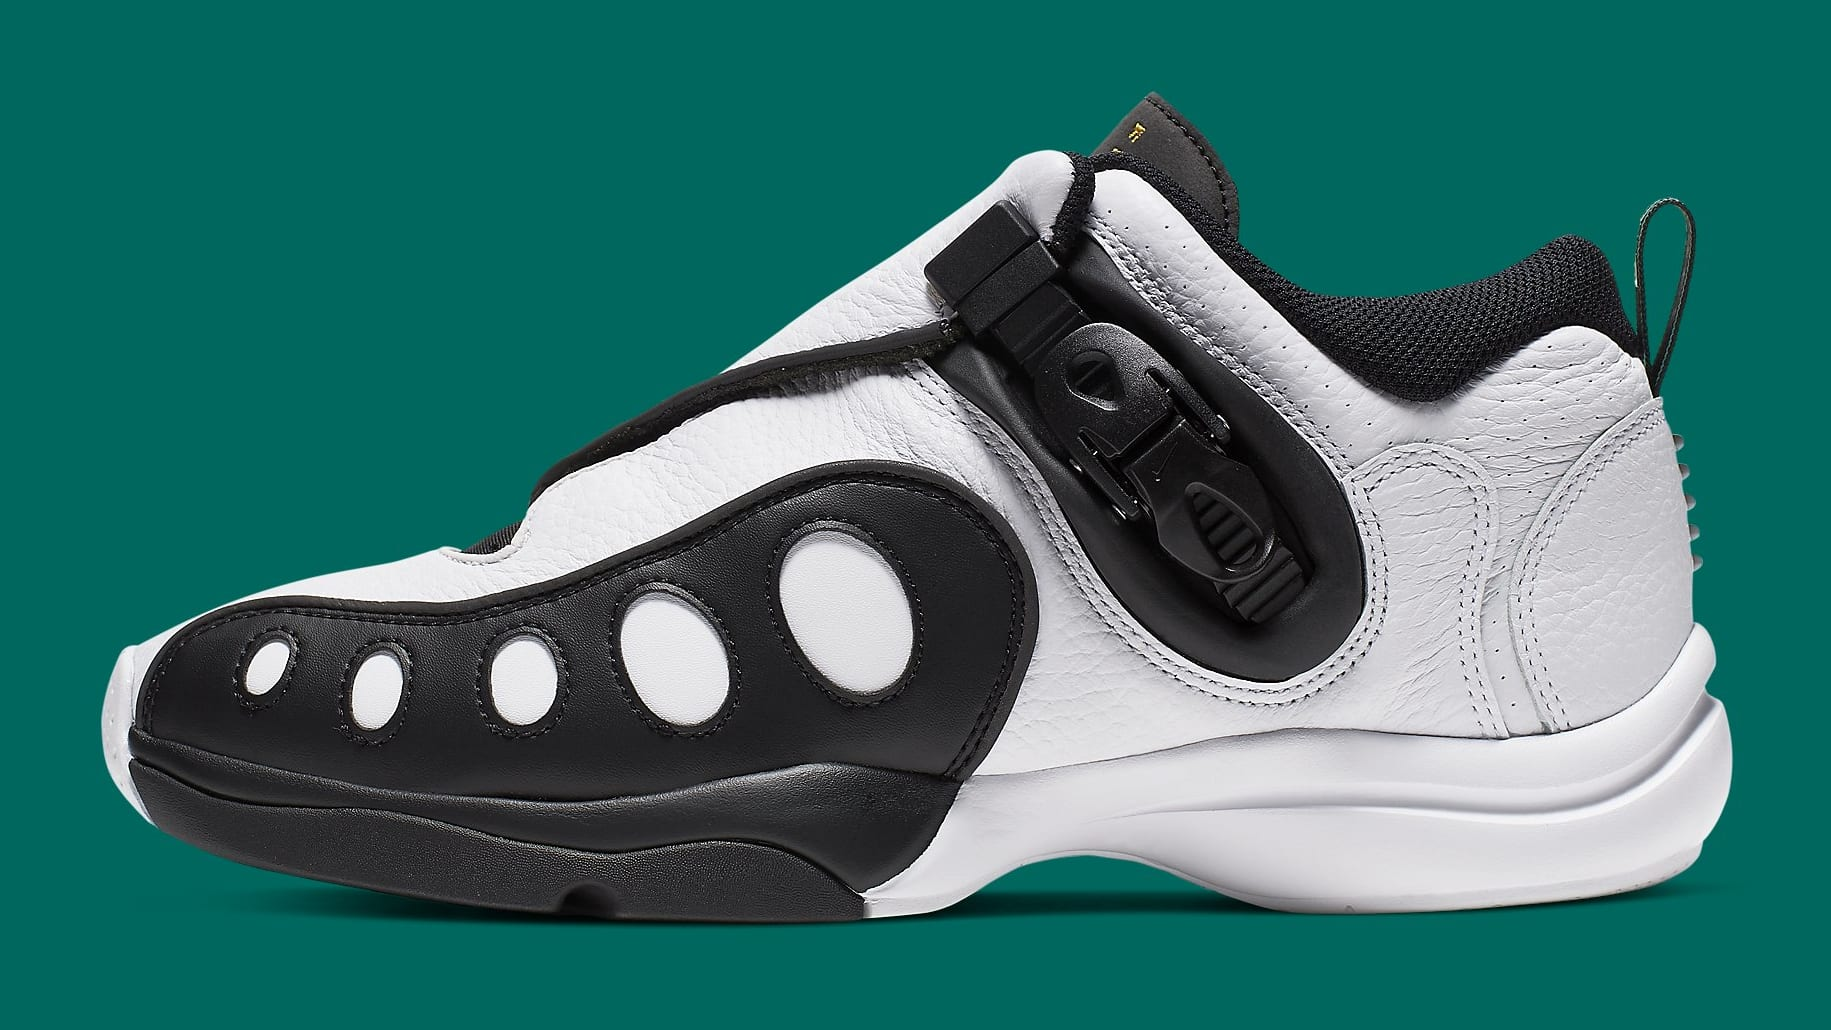 Nike Zoom GP White Black Release Date AR4342-100 Profile